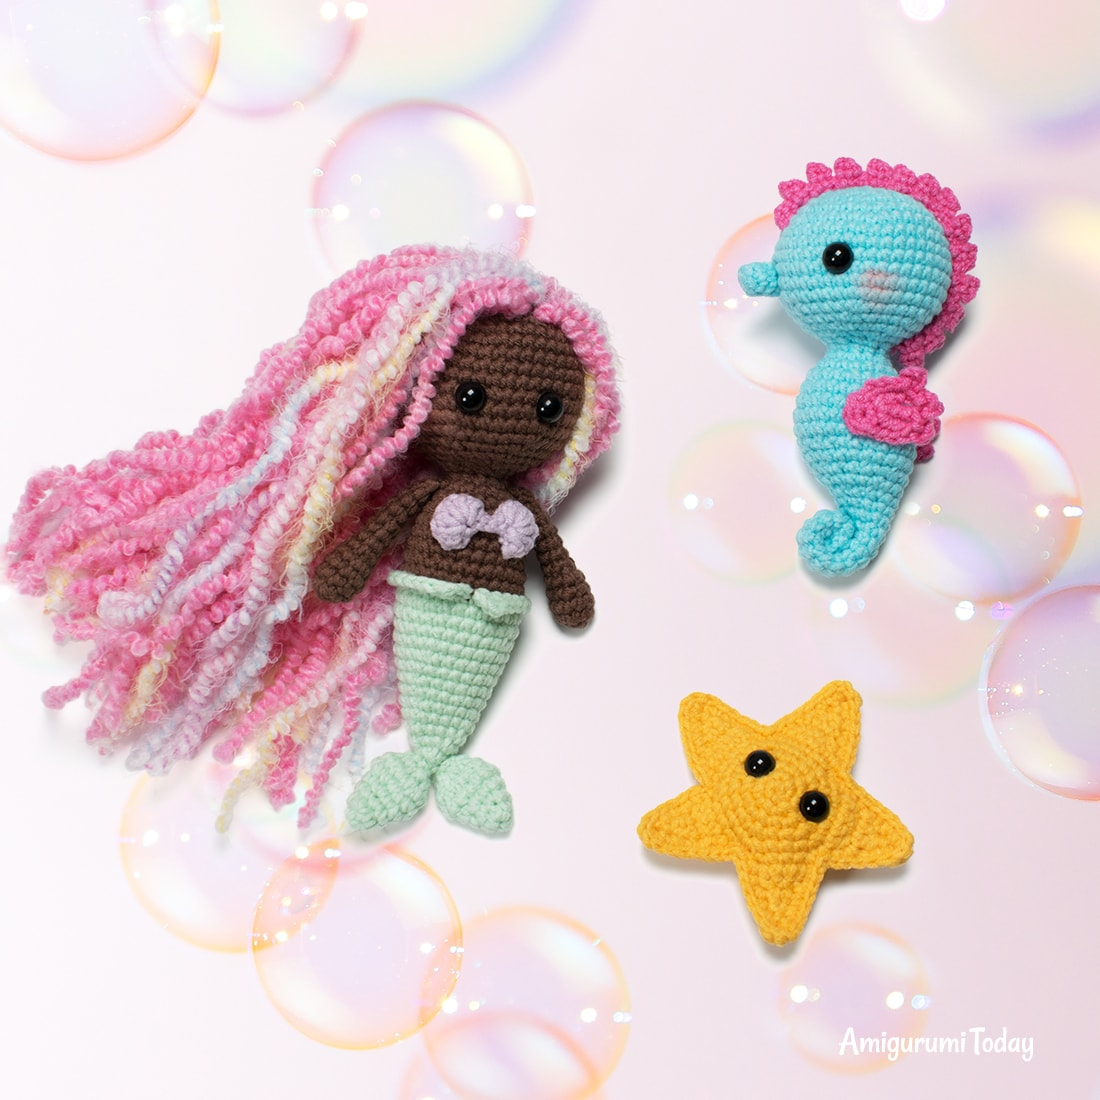 Little mermaid crochet pattern by Amigurumi Today